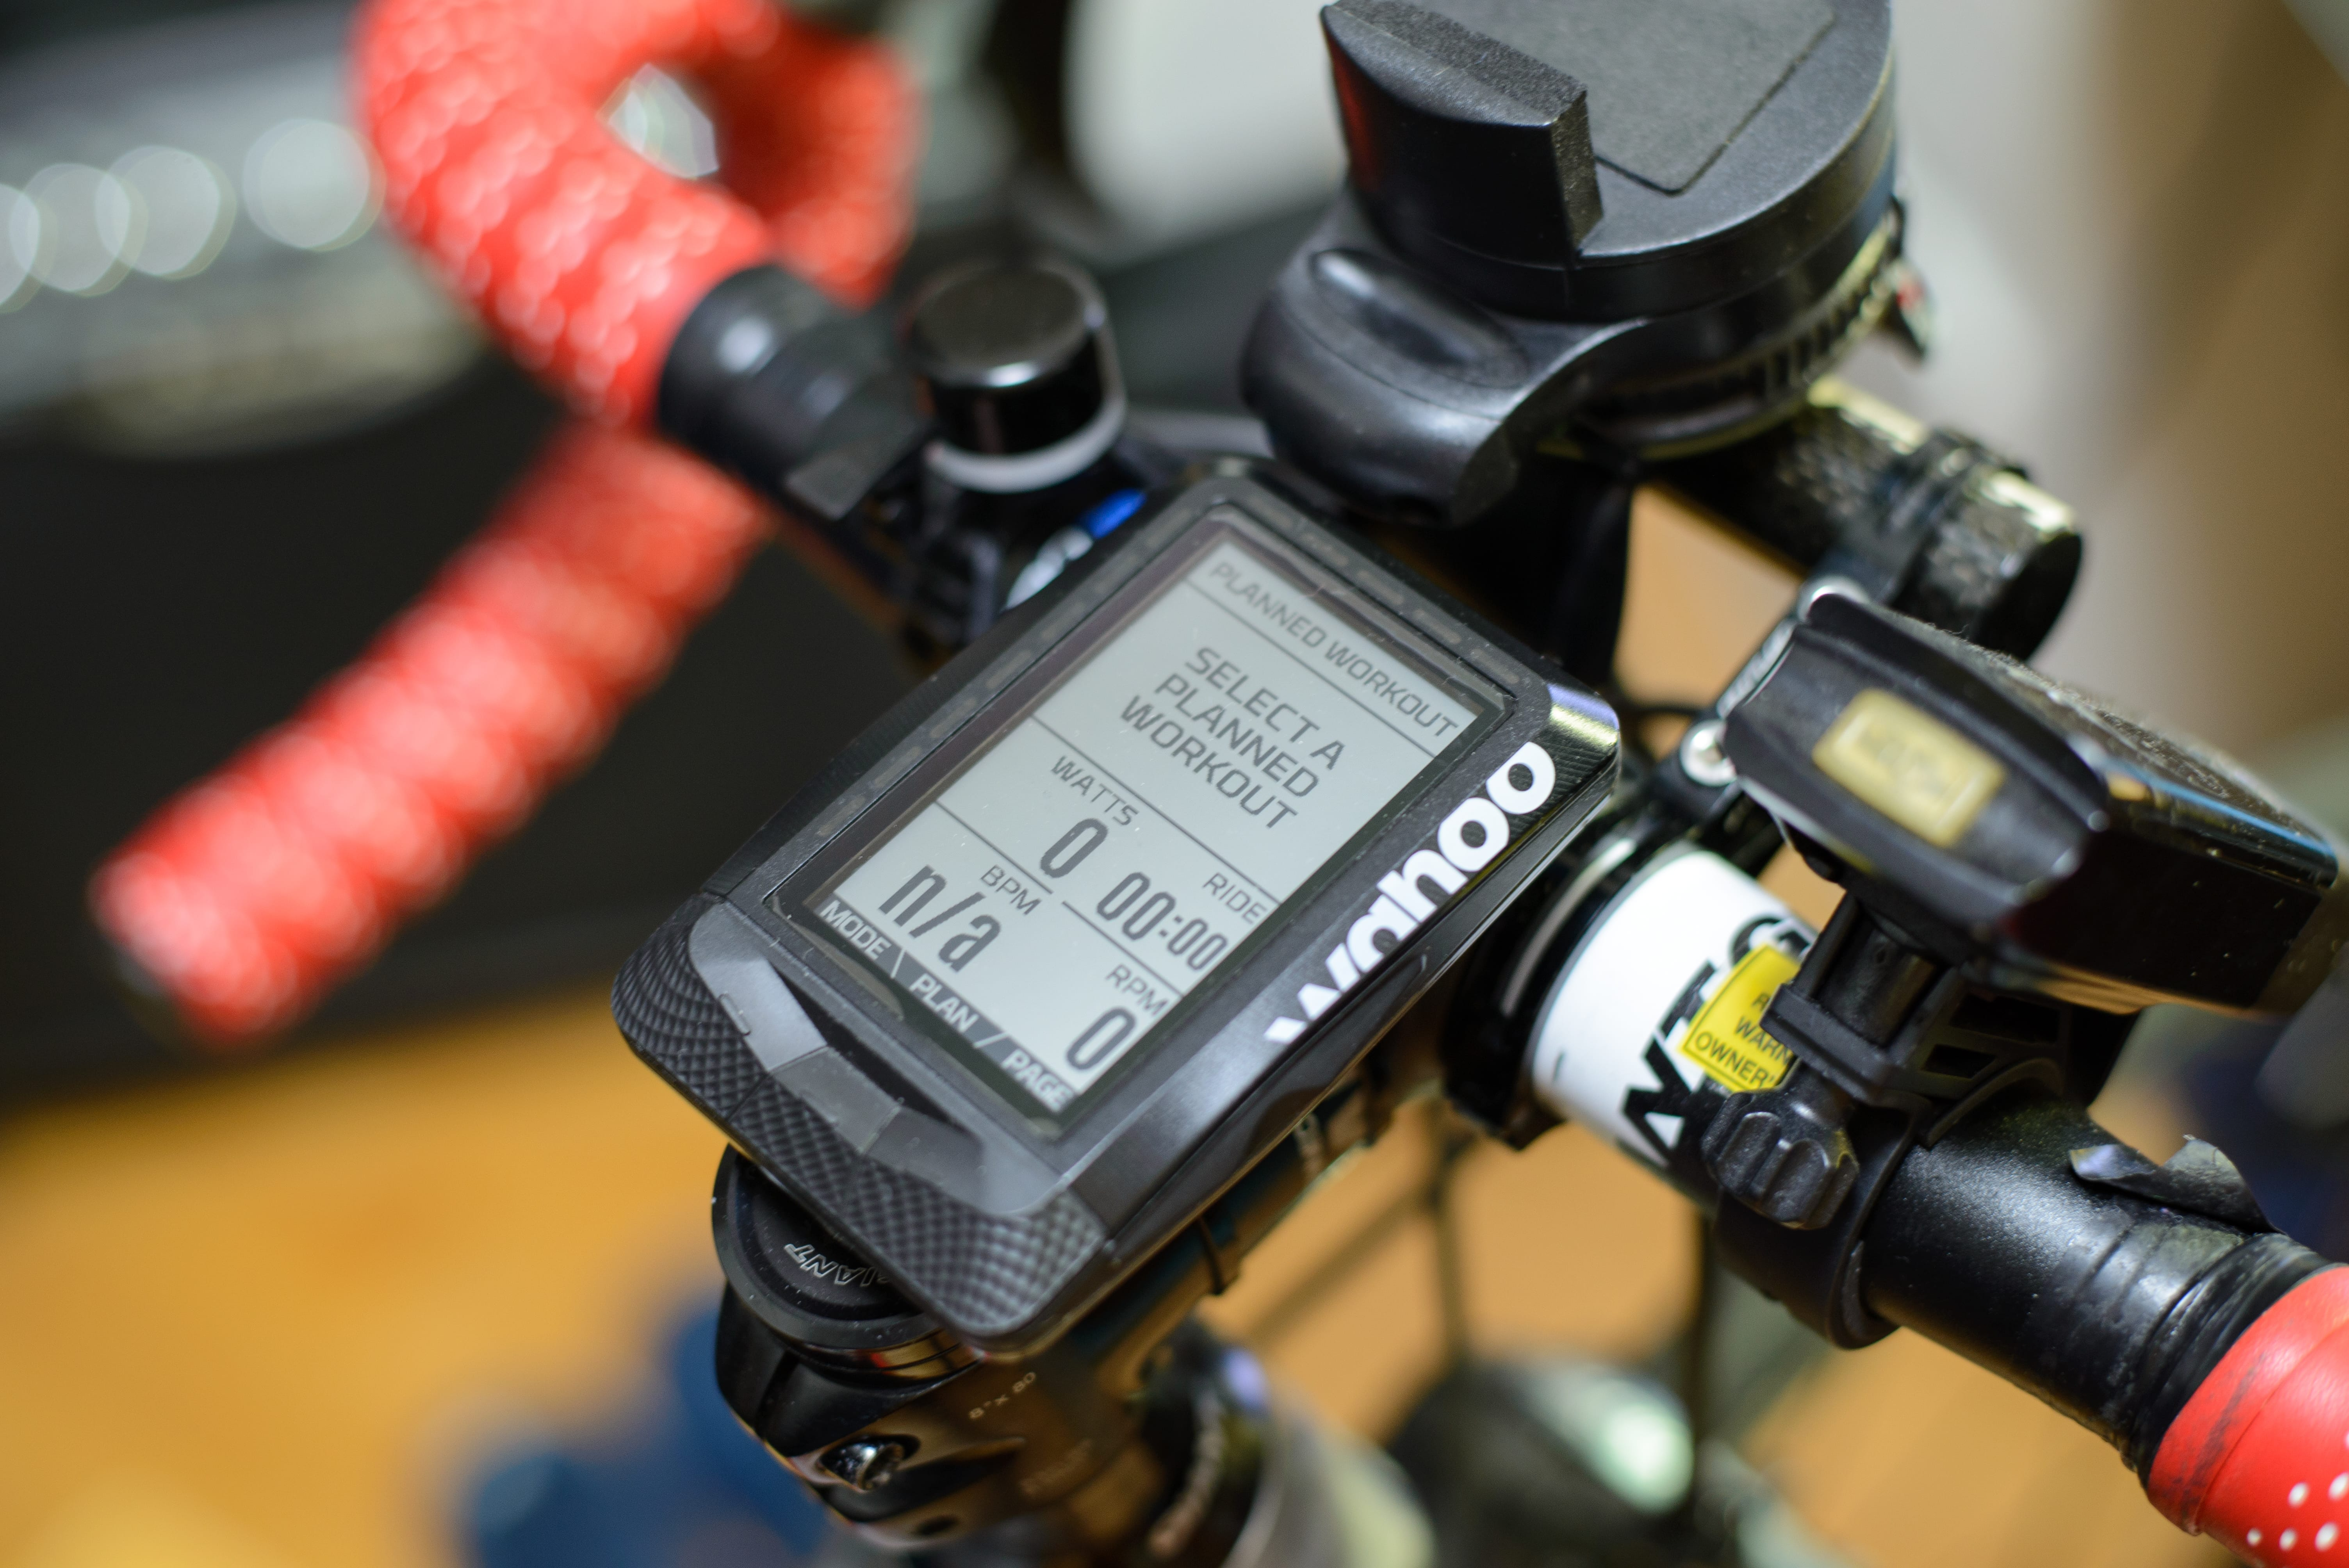 Wahoo ELEMNT - Planned Workout